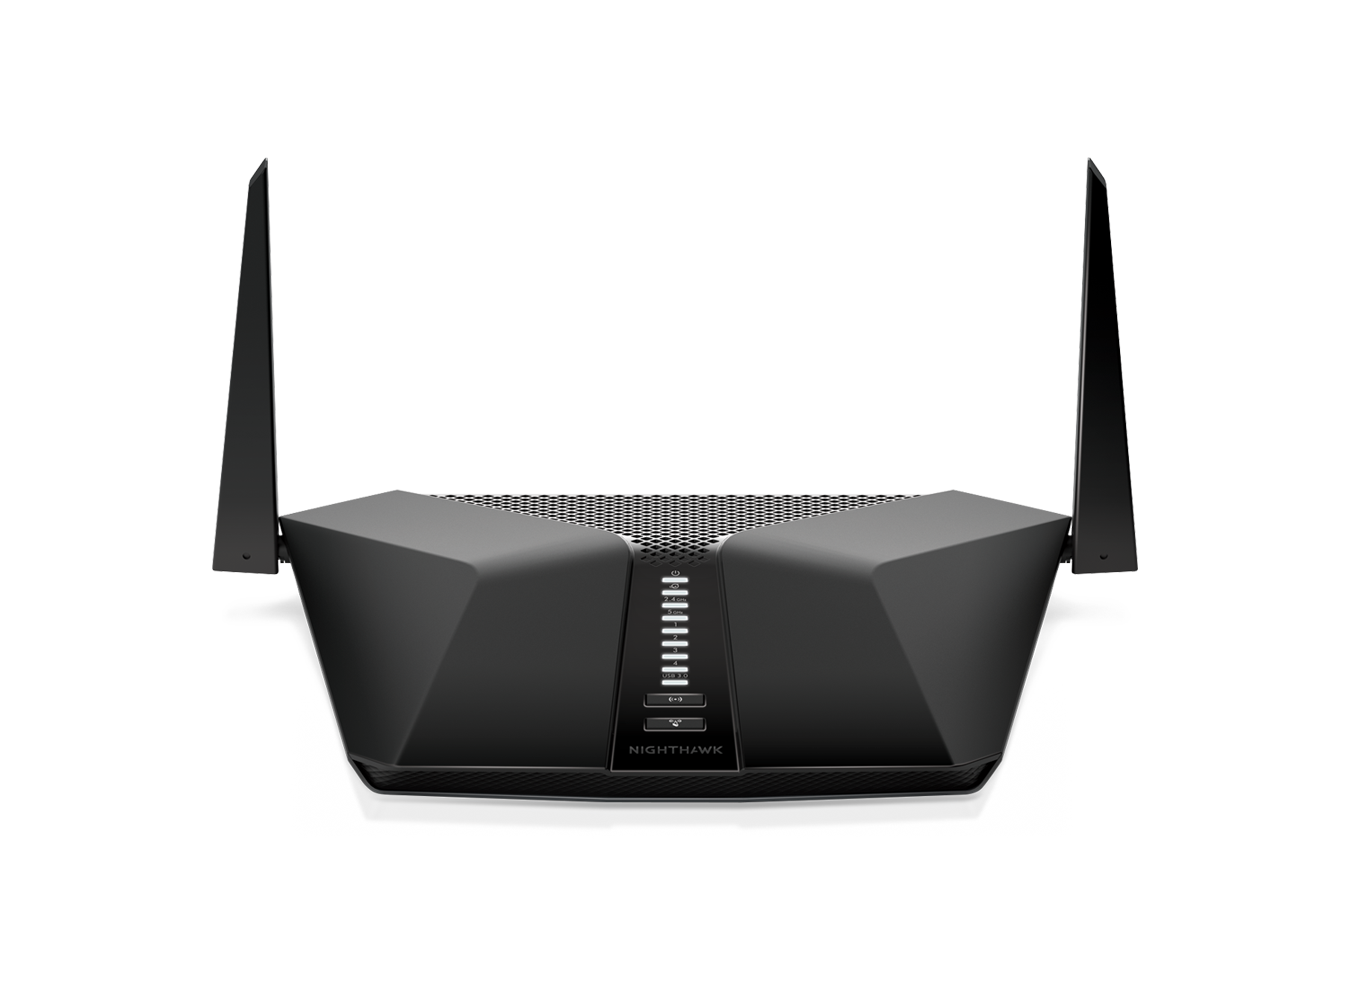 Nighthawk AX4 4-Stream WiFi 6 Router